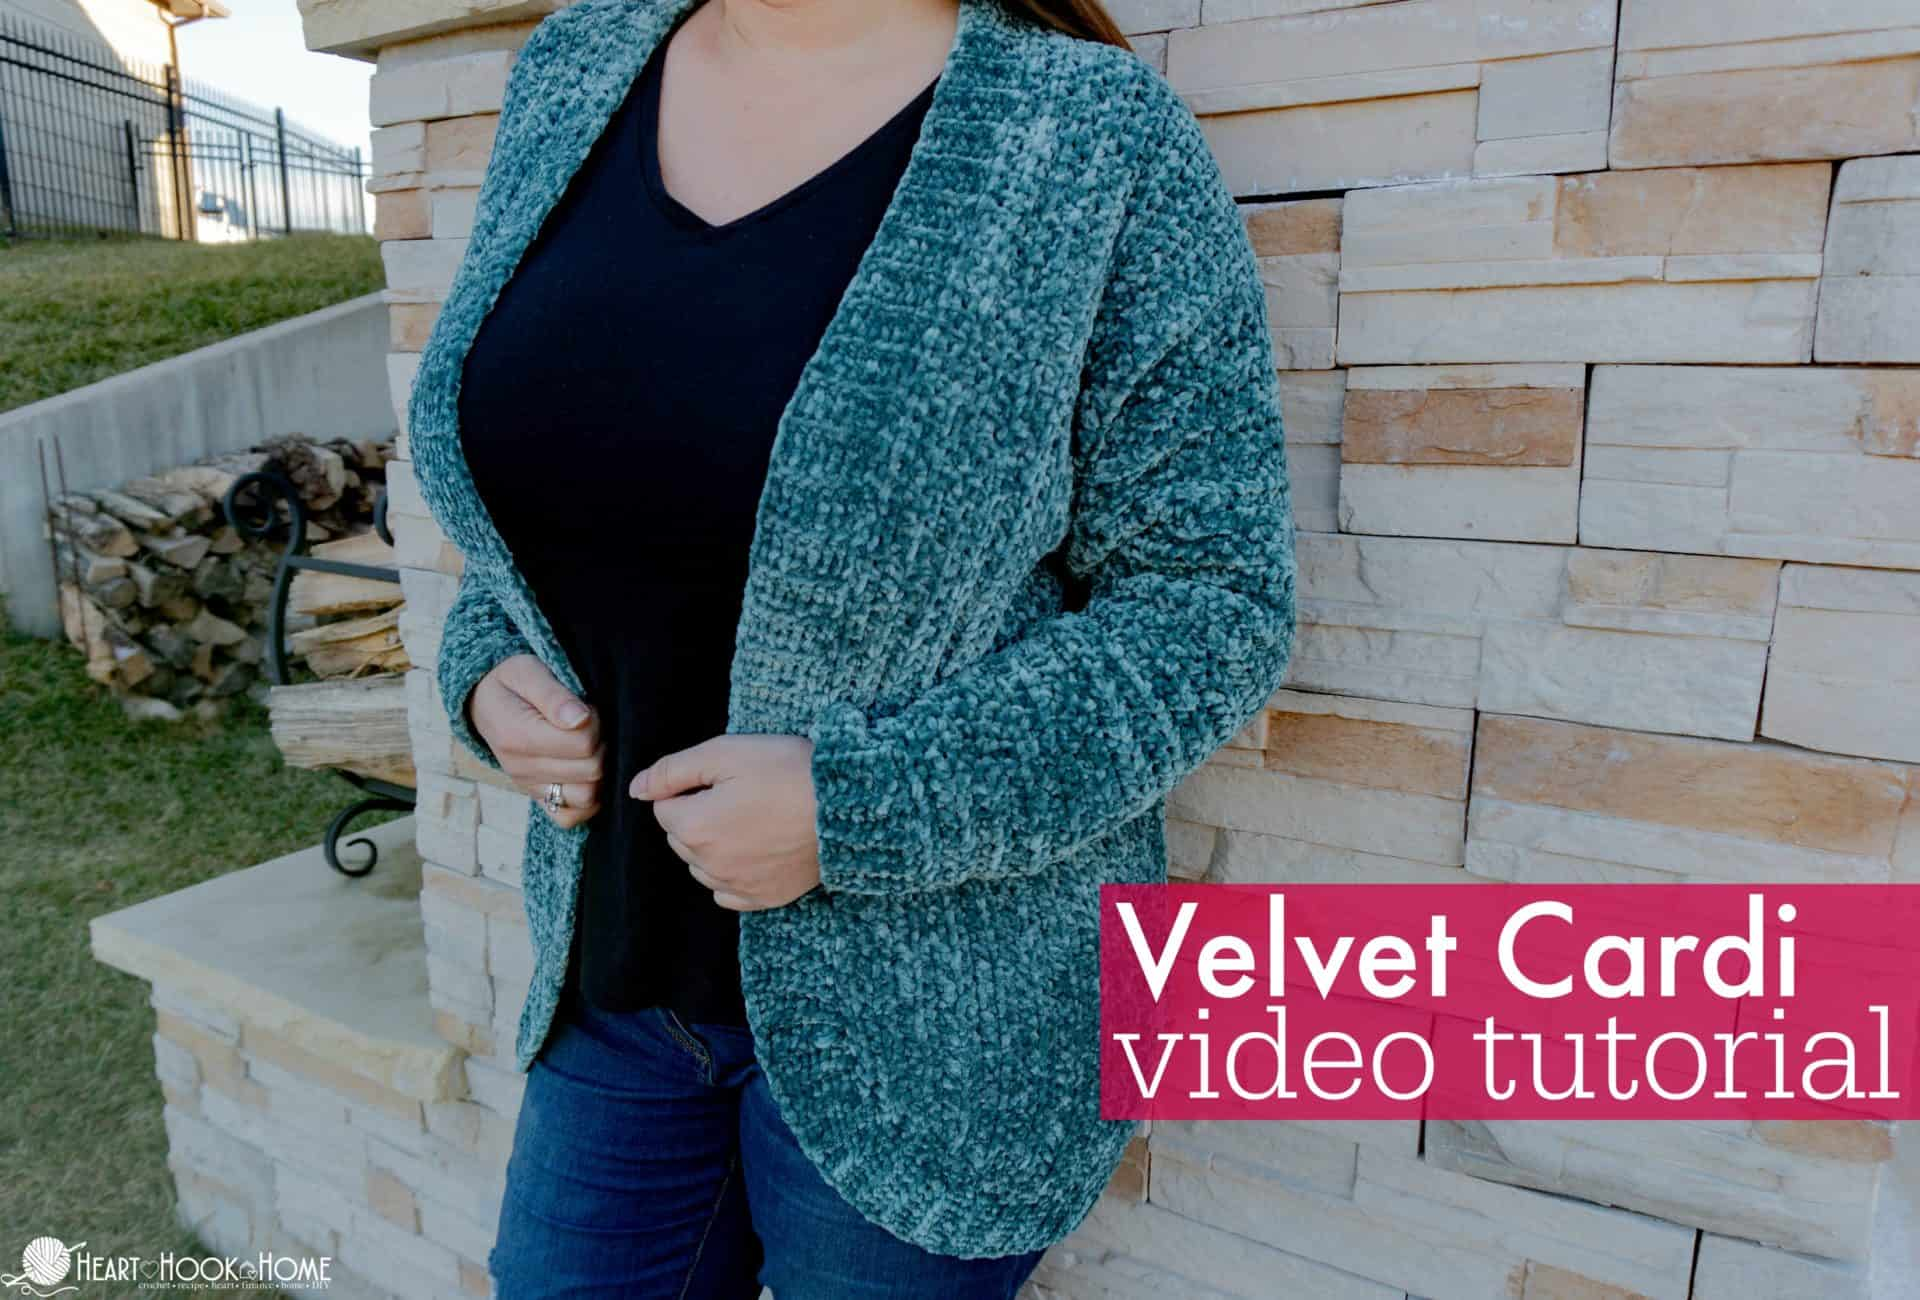 velvet cardigan video tutorial